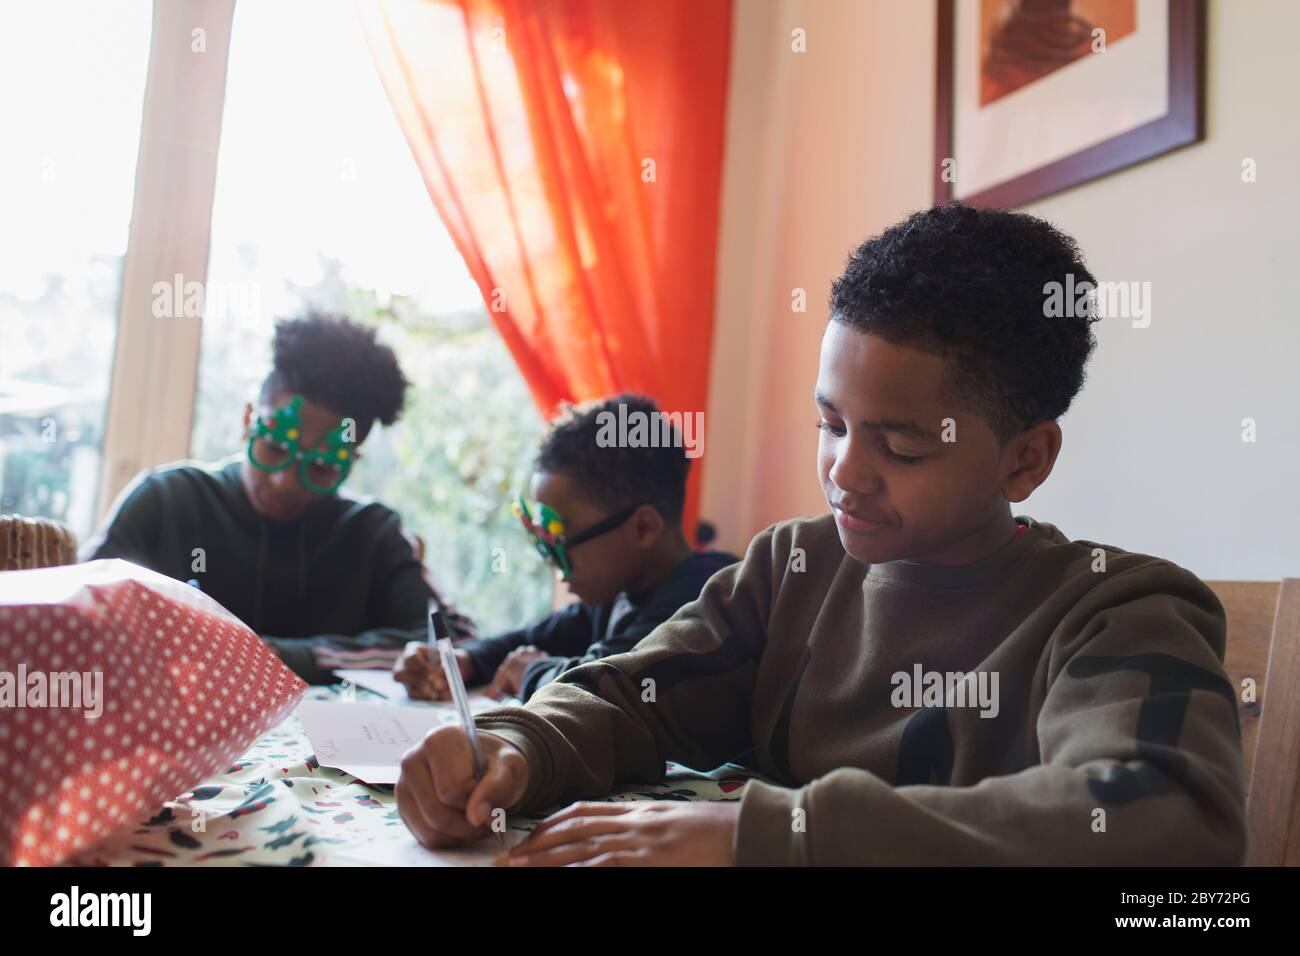 Boy writing Christmas cards at table Stock Photo